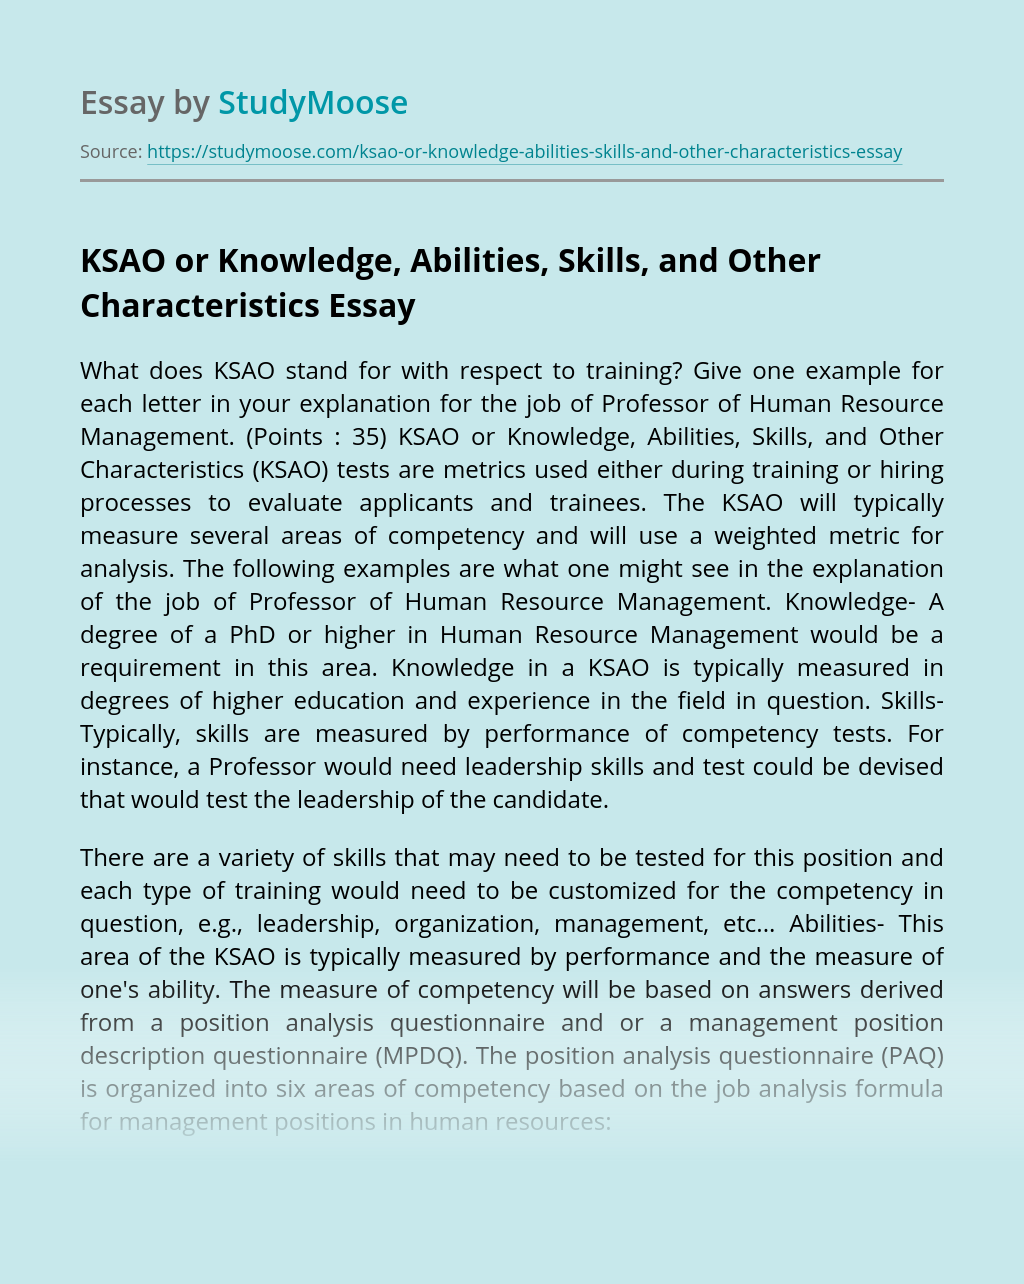 KSAO or Knowledge, Abilities, Skills, and Other Characteristics